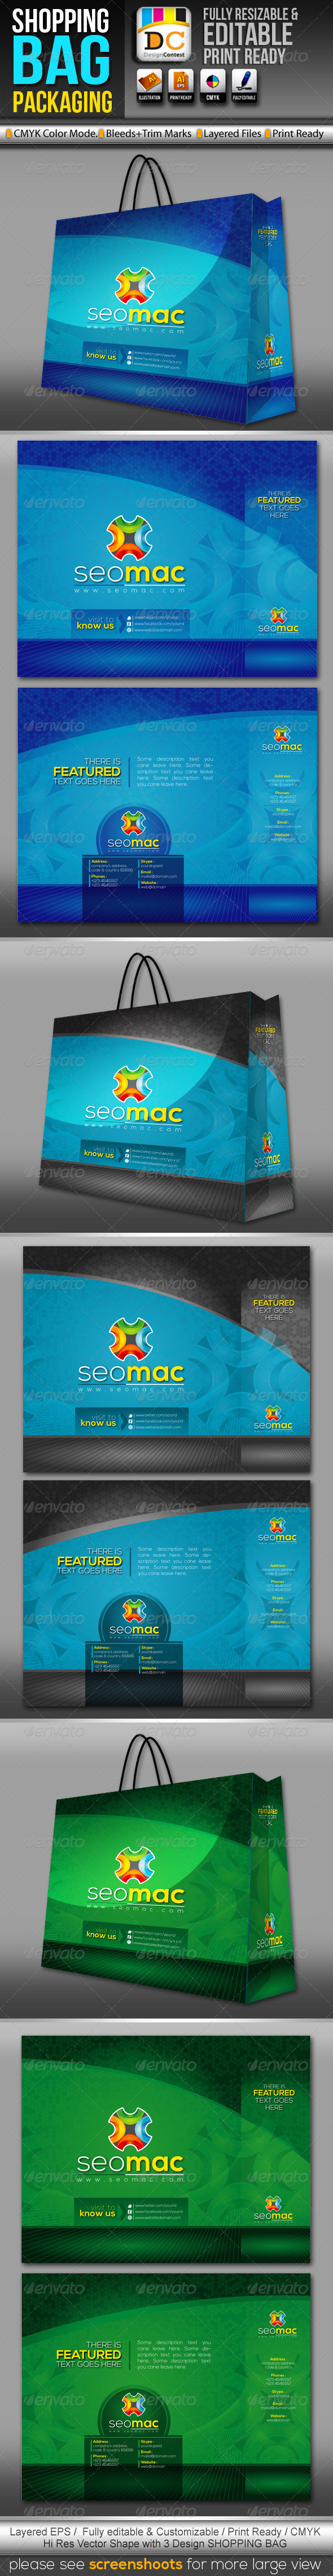 SeoMac Shopping Bag Packaging  - Packaging Print Templates